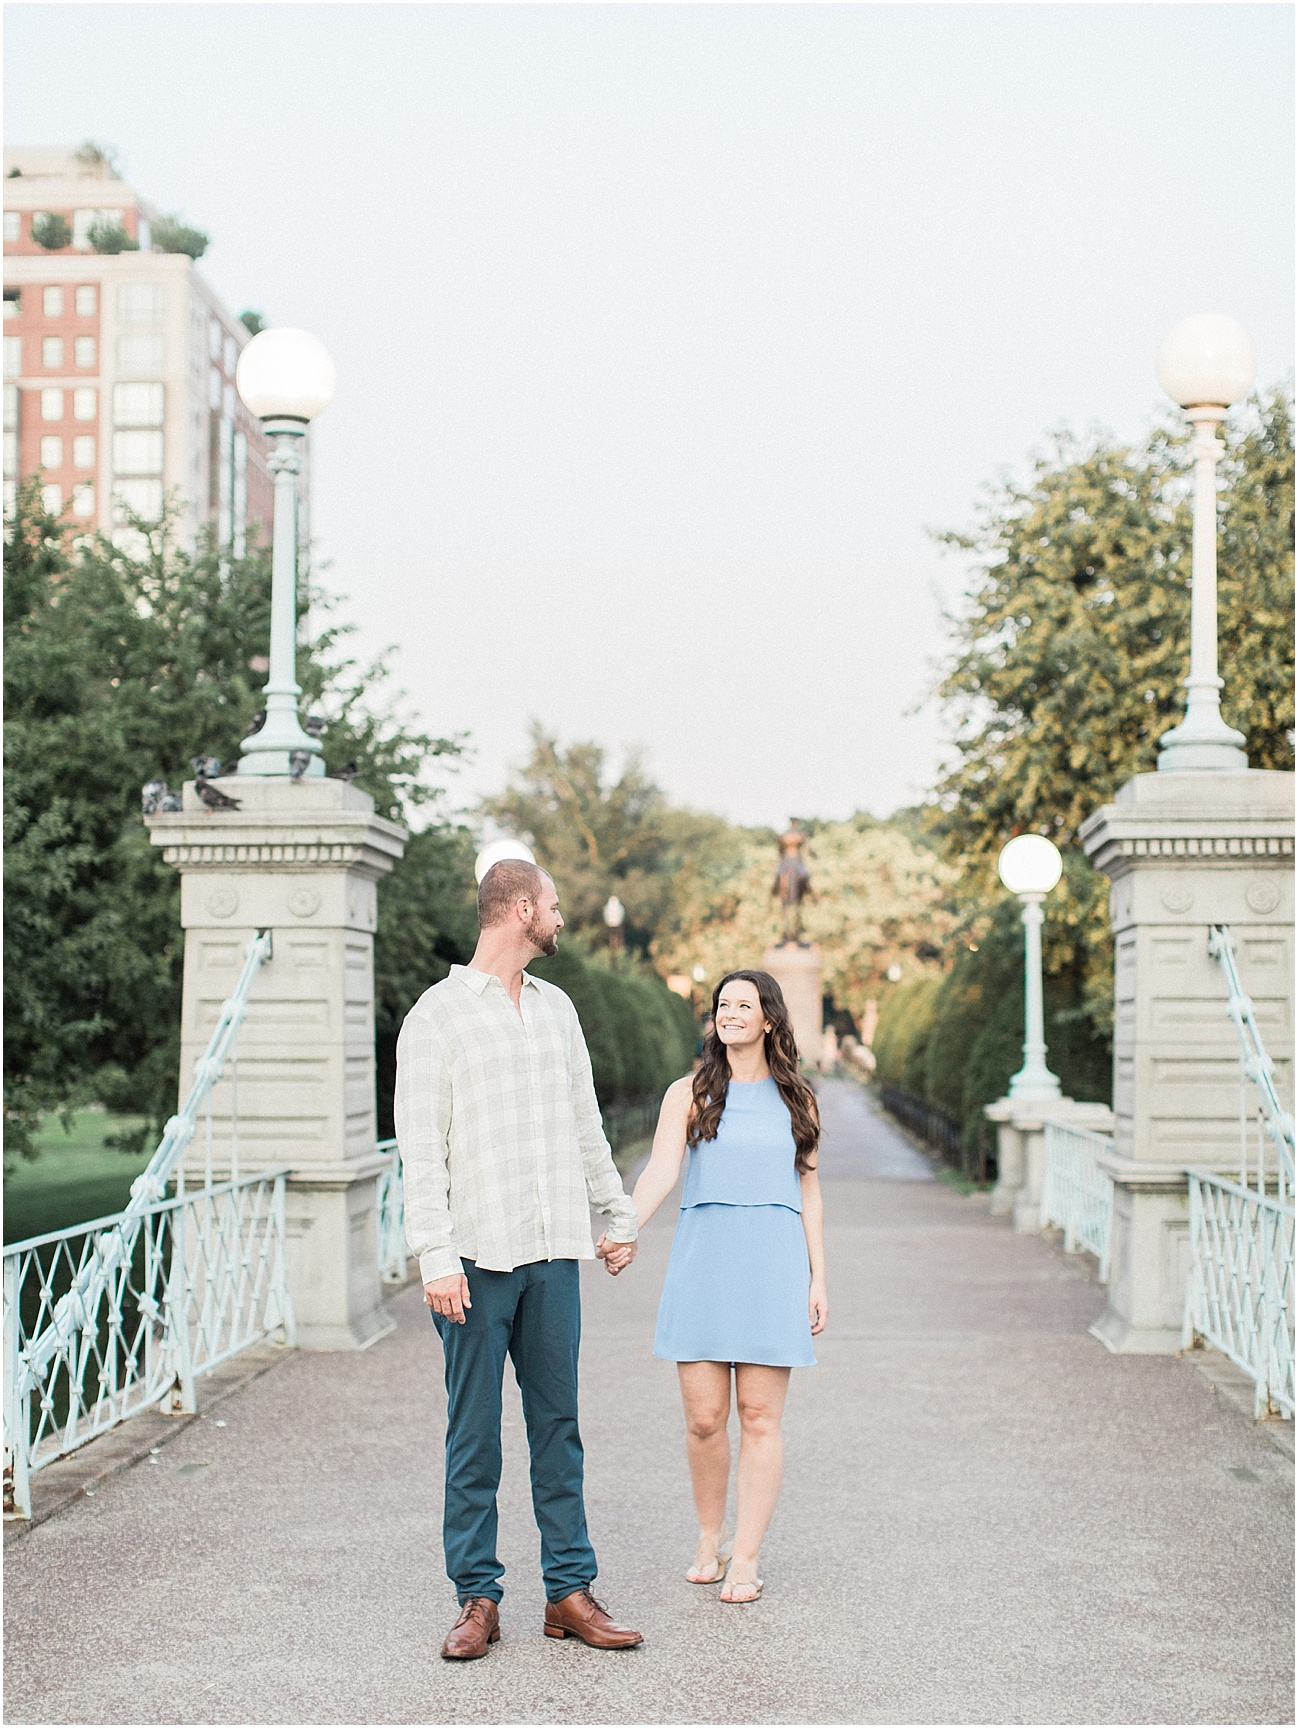 christina_frank_common_engagement_acorn_street_back_bay_cape_cod_boston_wedding_photographer_meredith_jane_photography_photo_0709.jpg